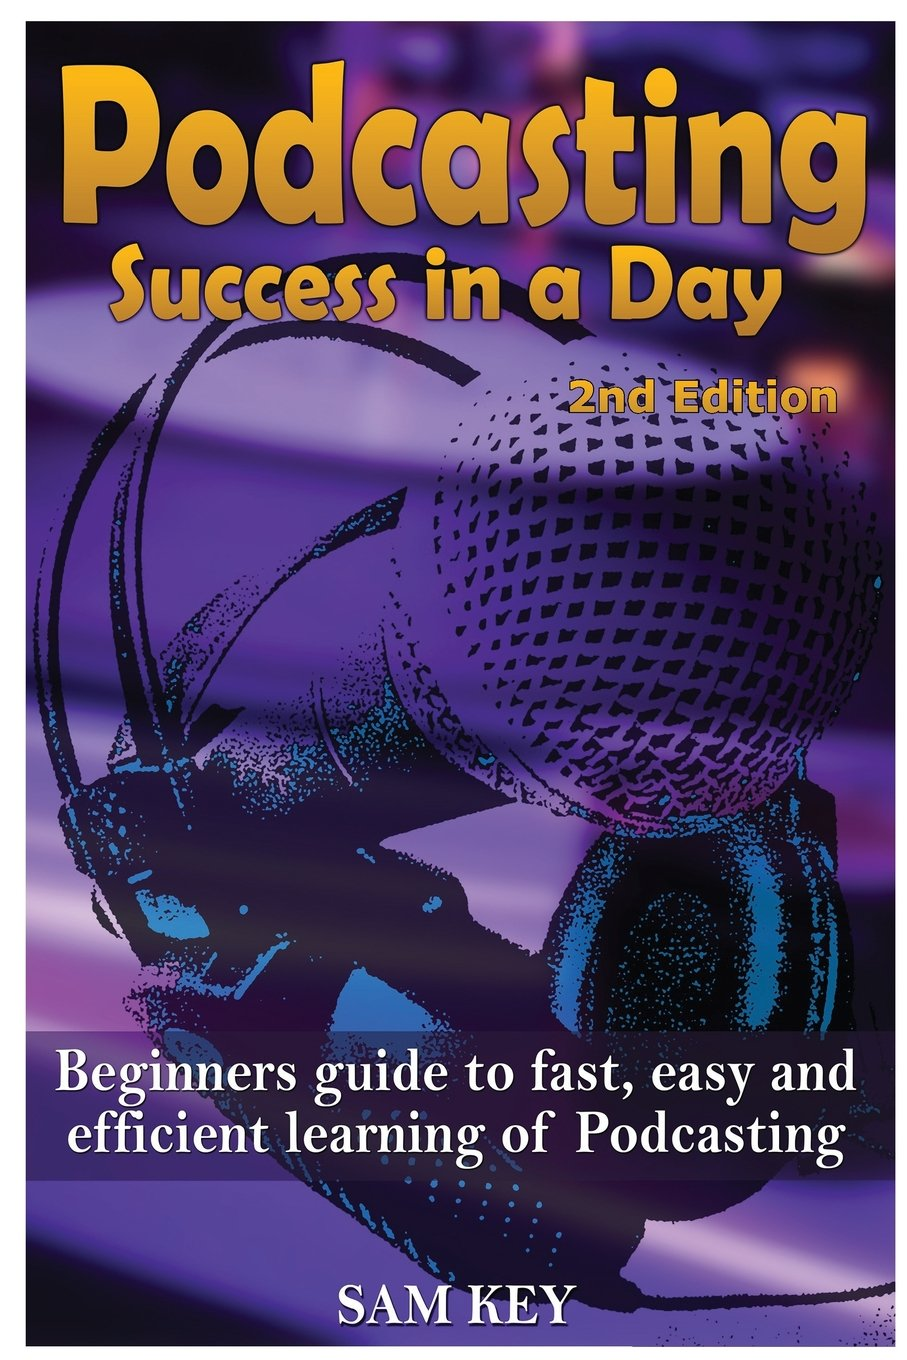 Podcasting Success in a Day: Beginner's Guide to Fast, Easy, and Efficient Learning of Podcasting